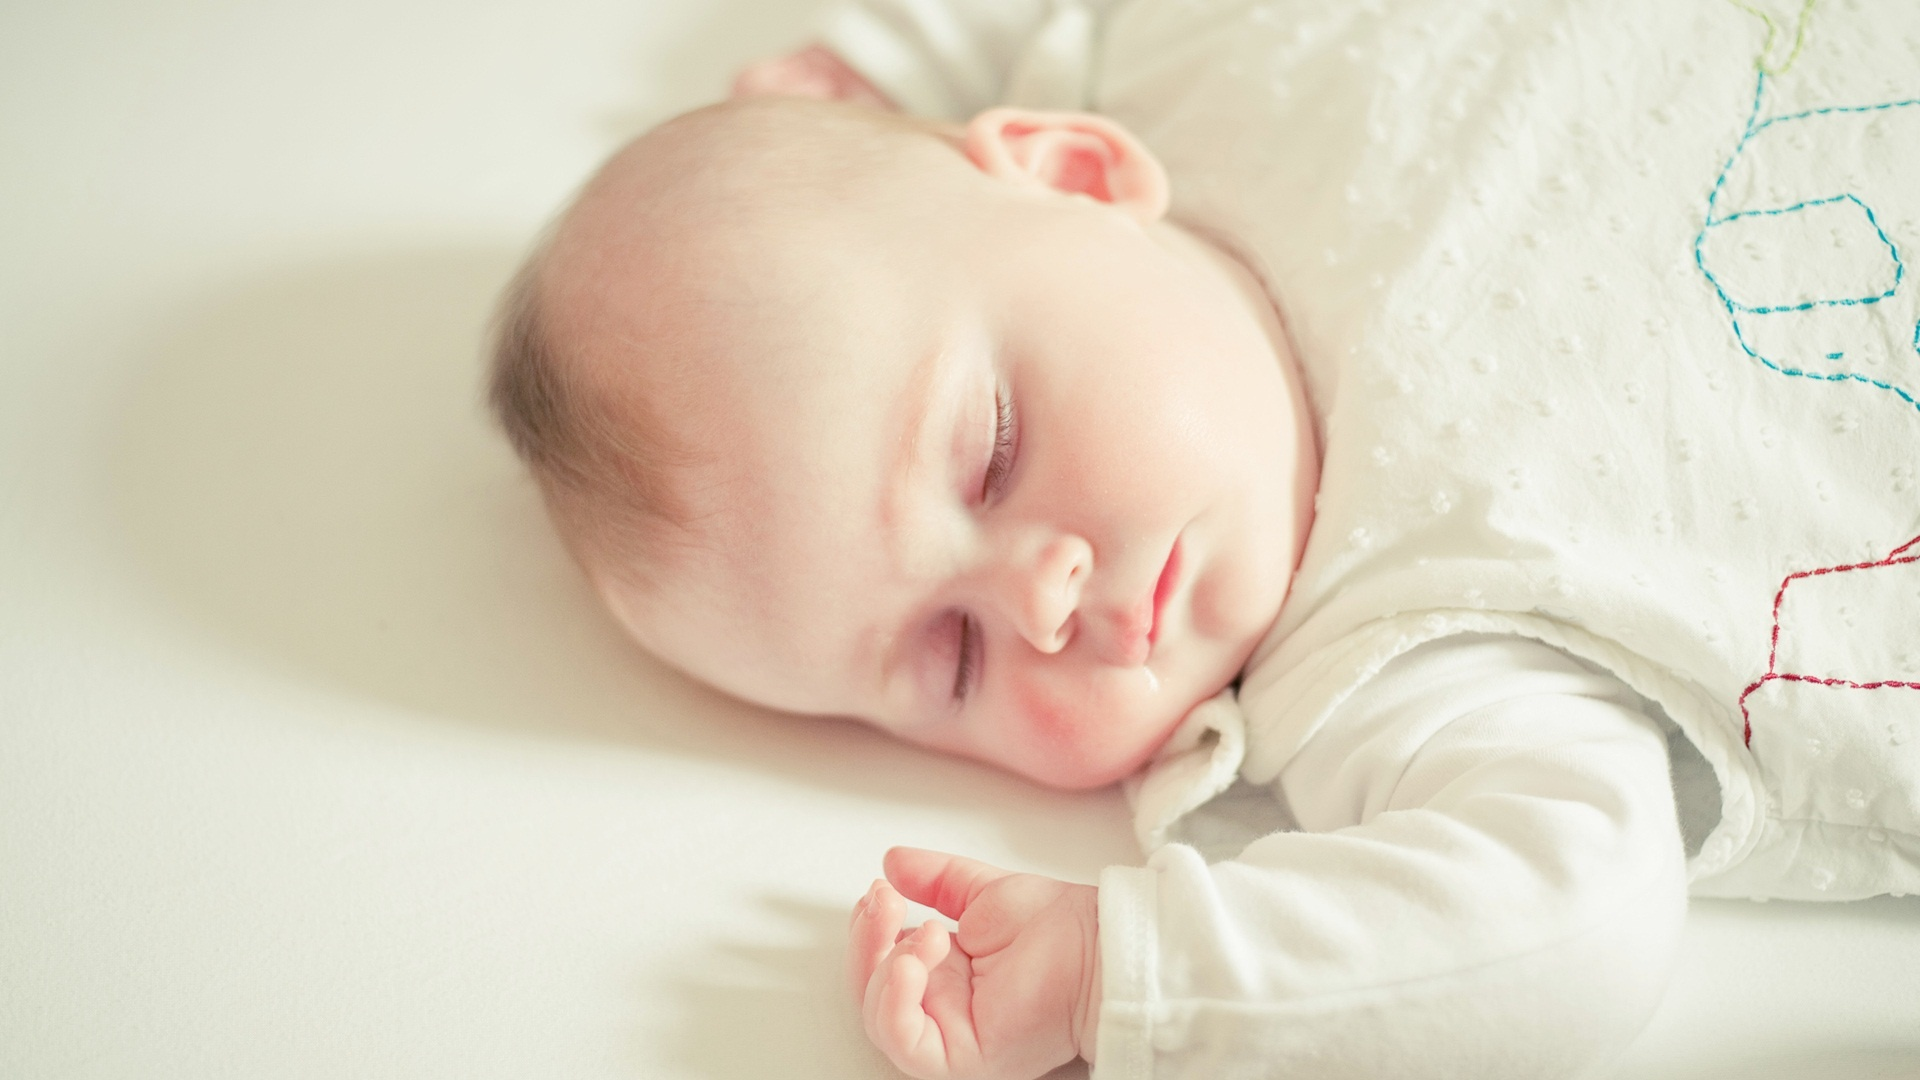 Cute Baby Wallpapers Free Download: Cute Sleeping Baby Wallpapers In Jpg Format For Free Download